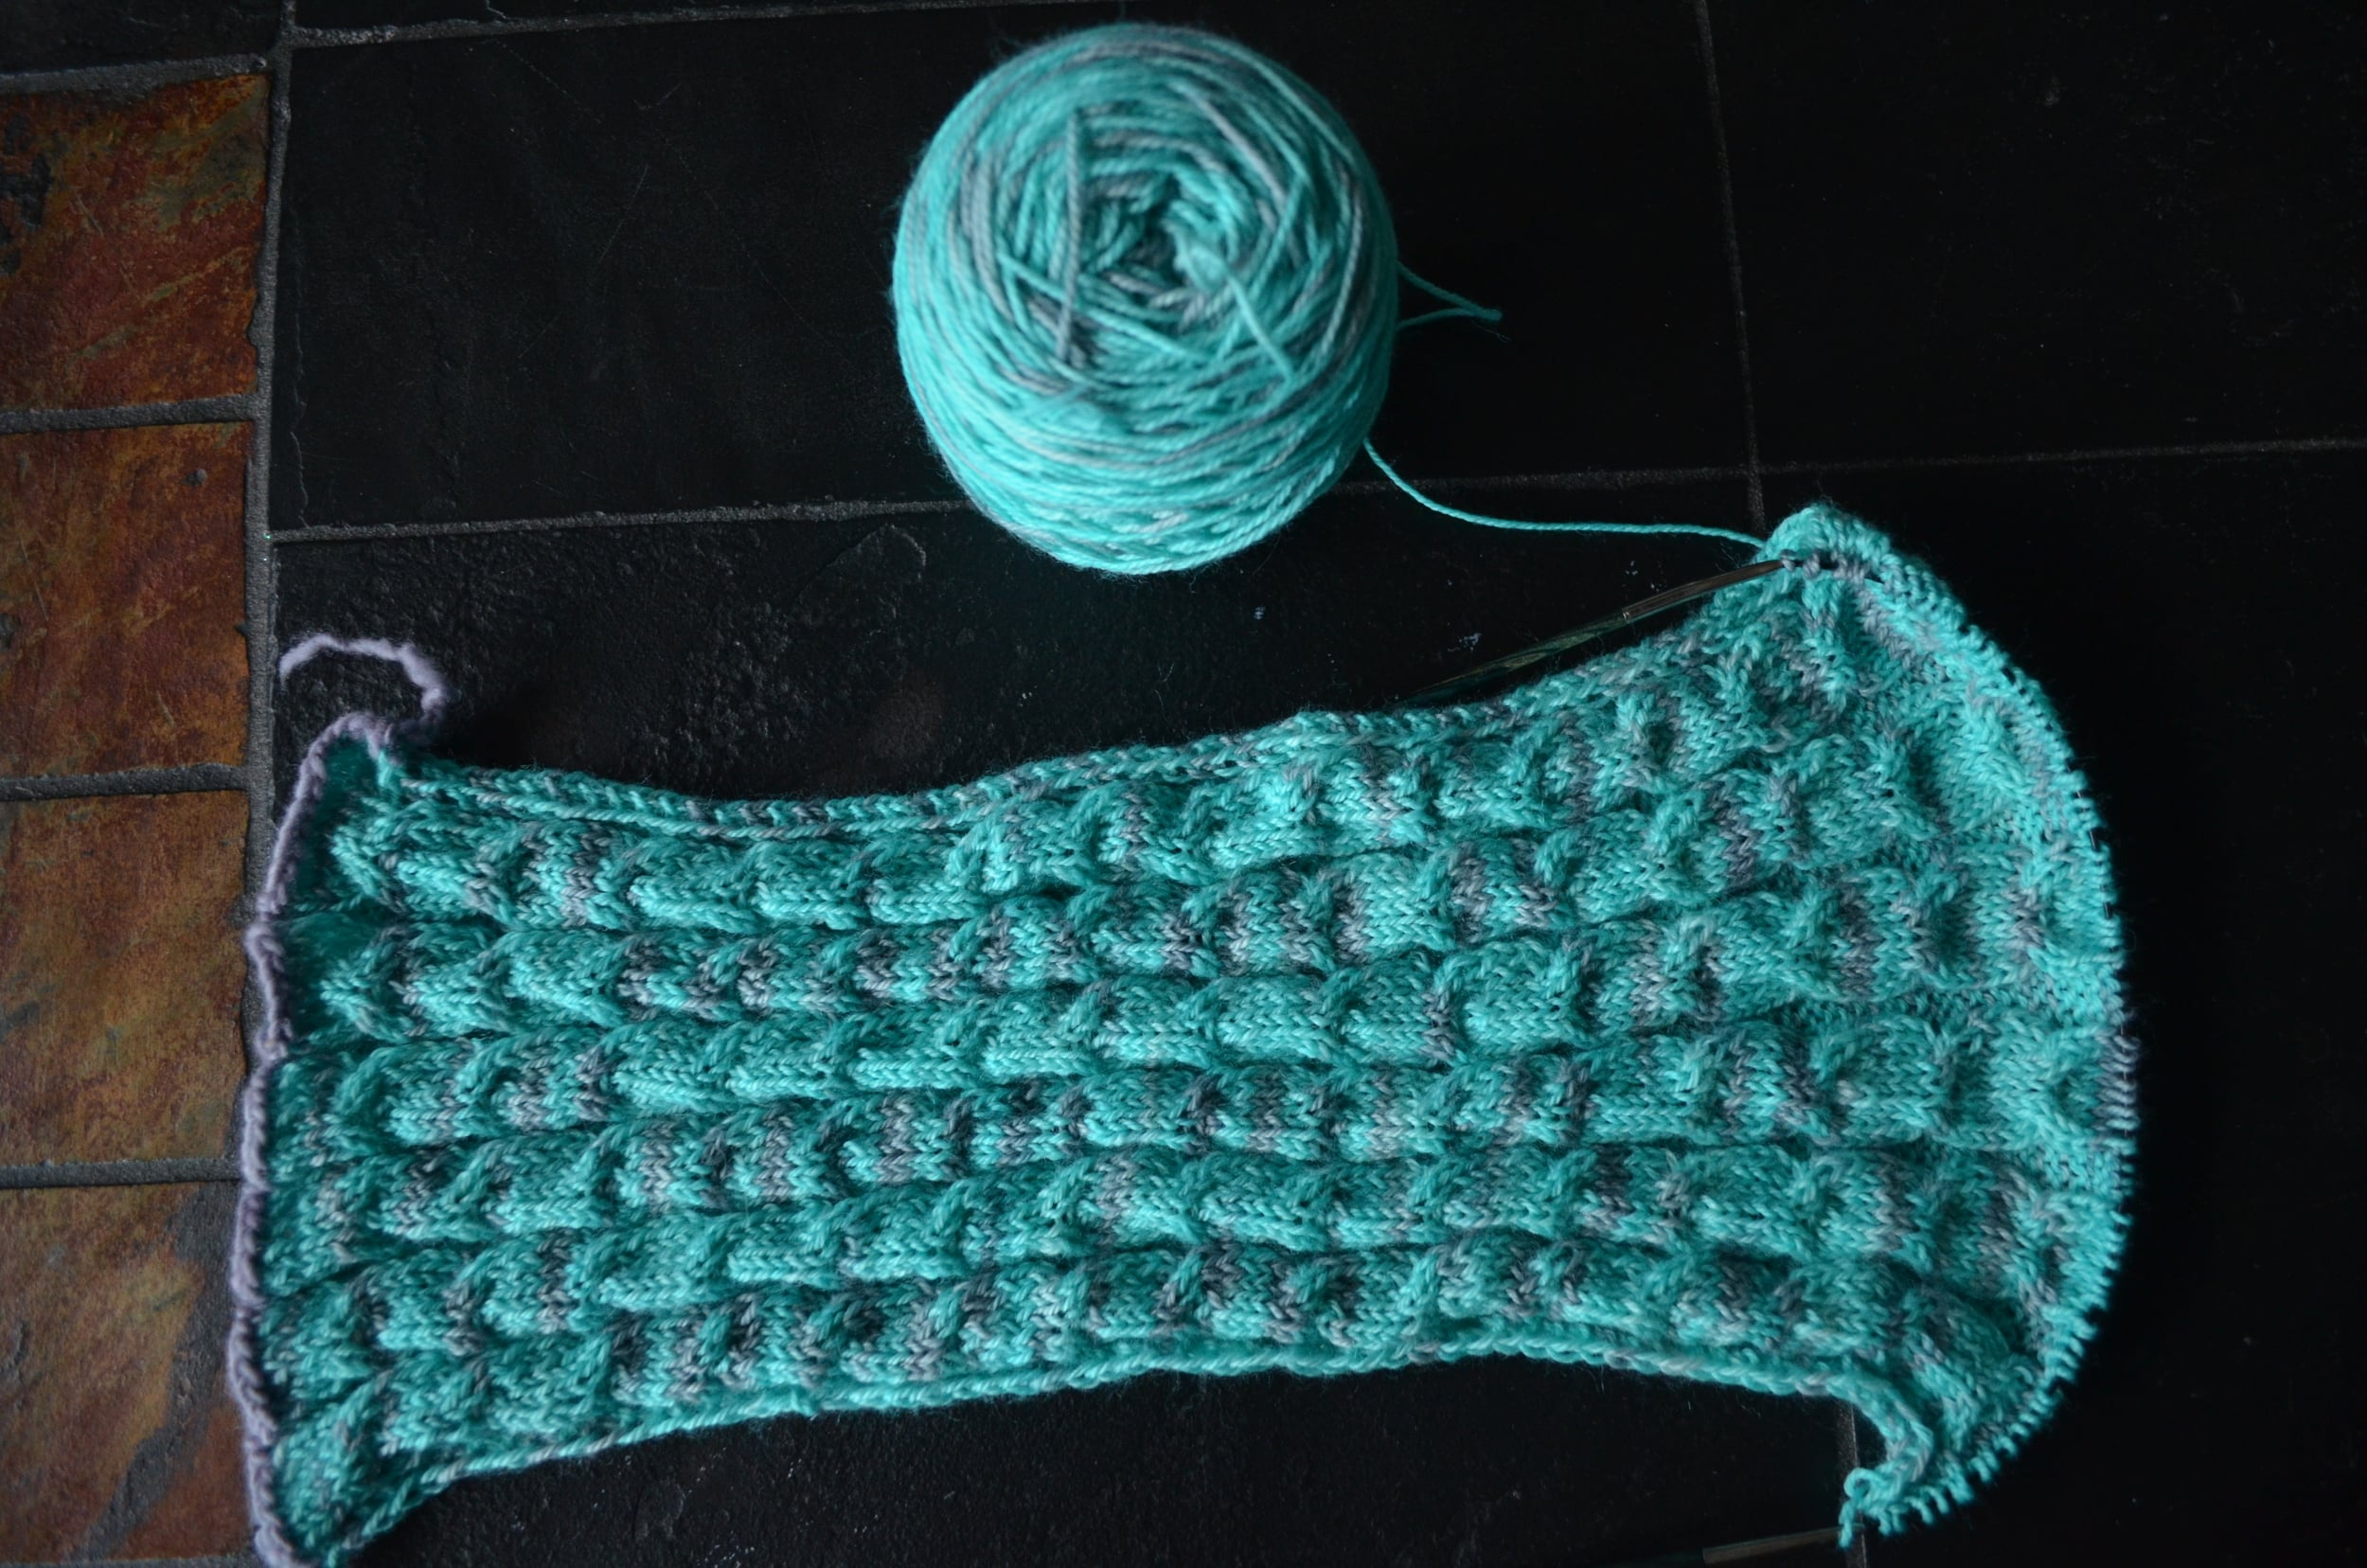 Teal Knitting / warporweft.com